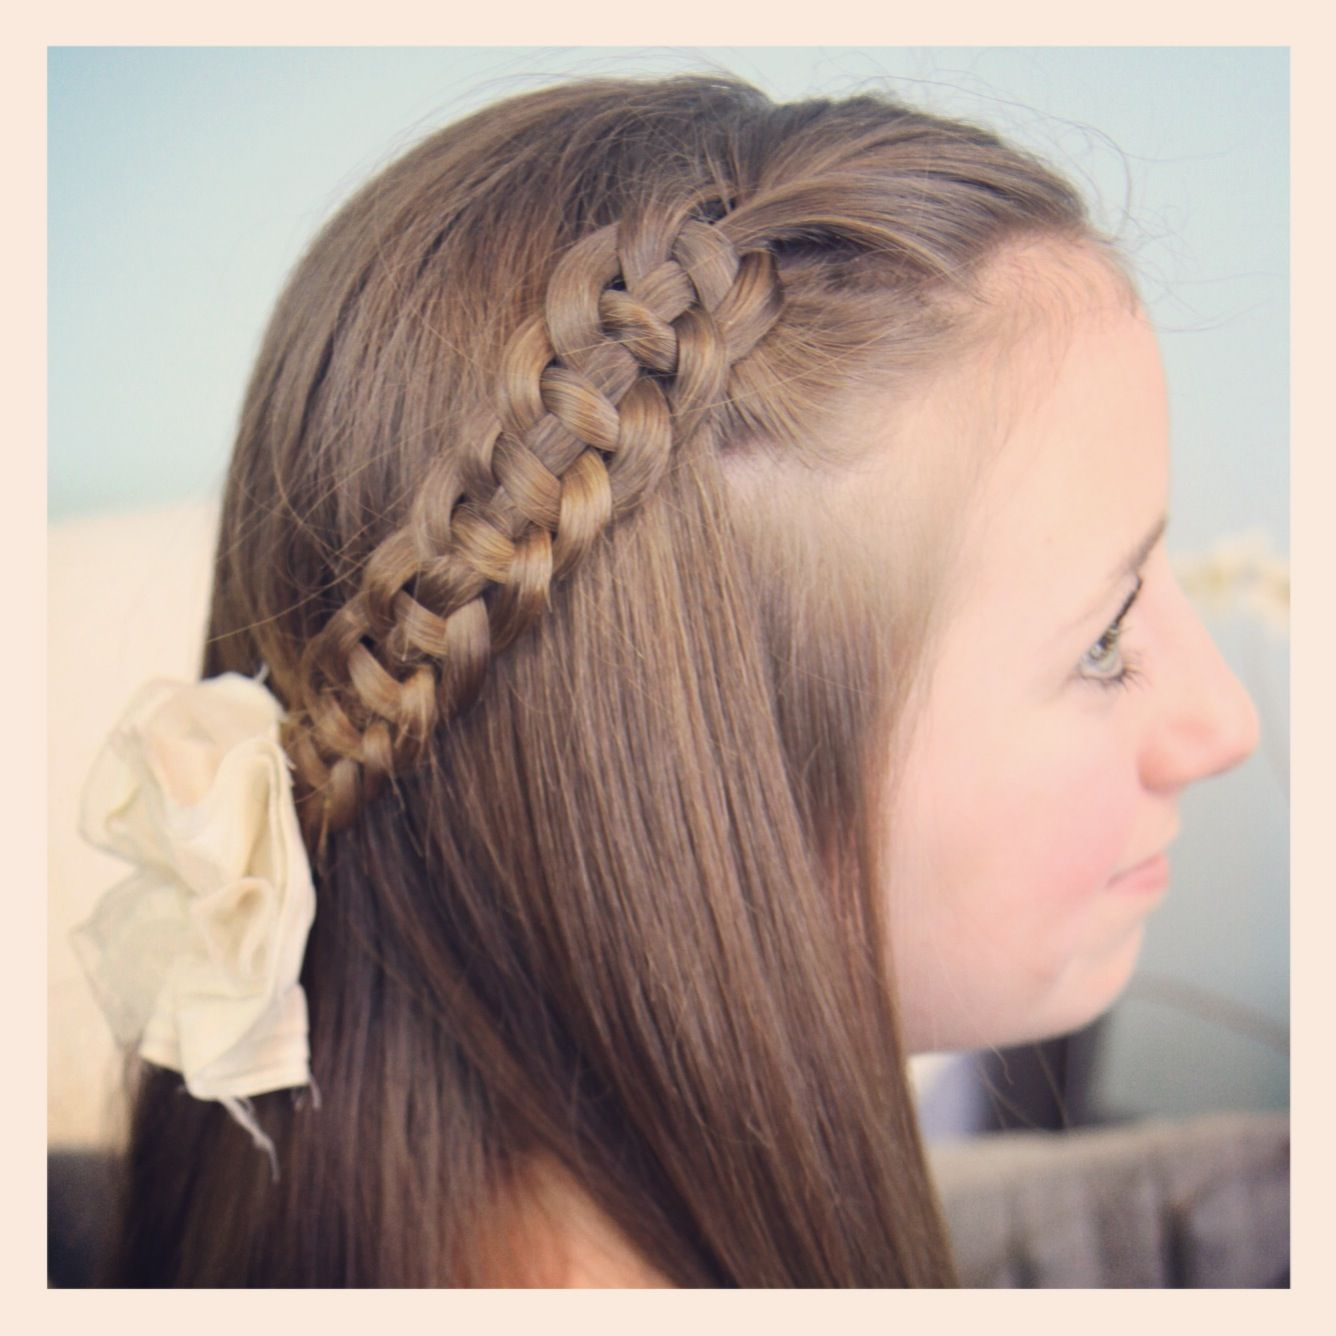 Cute Updos For Little Girls | Cute Girls Hairstyles > Hairstyles > Time > 05-10 Minutes > 4-Strand ...